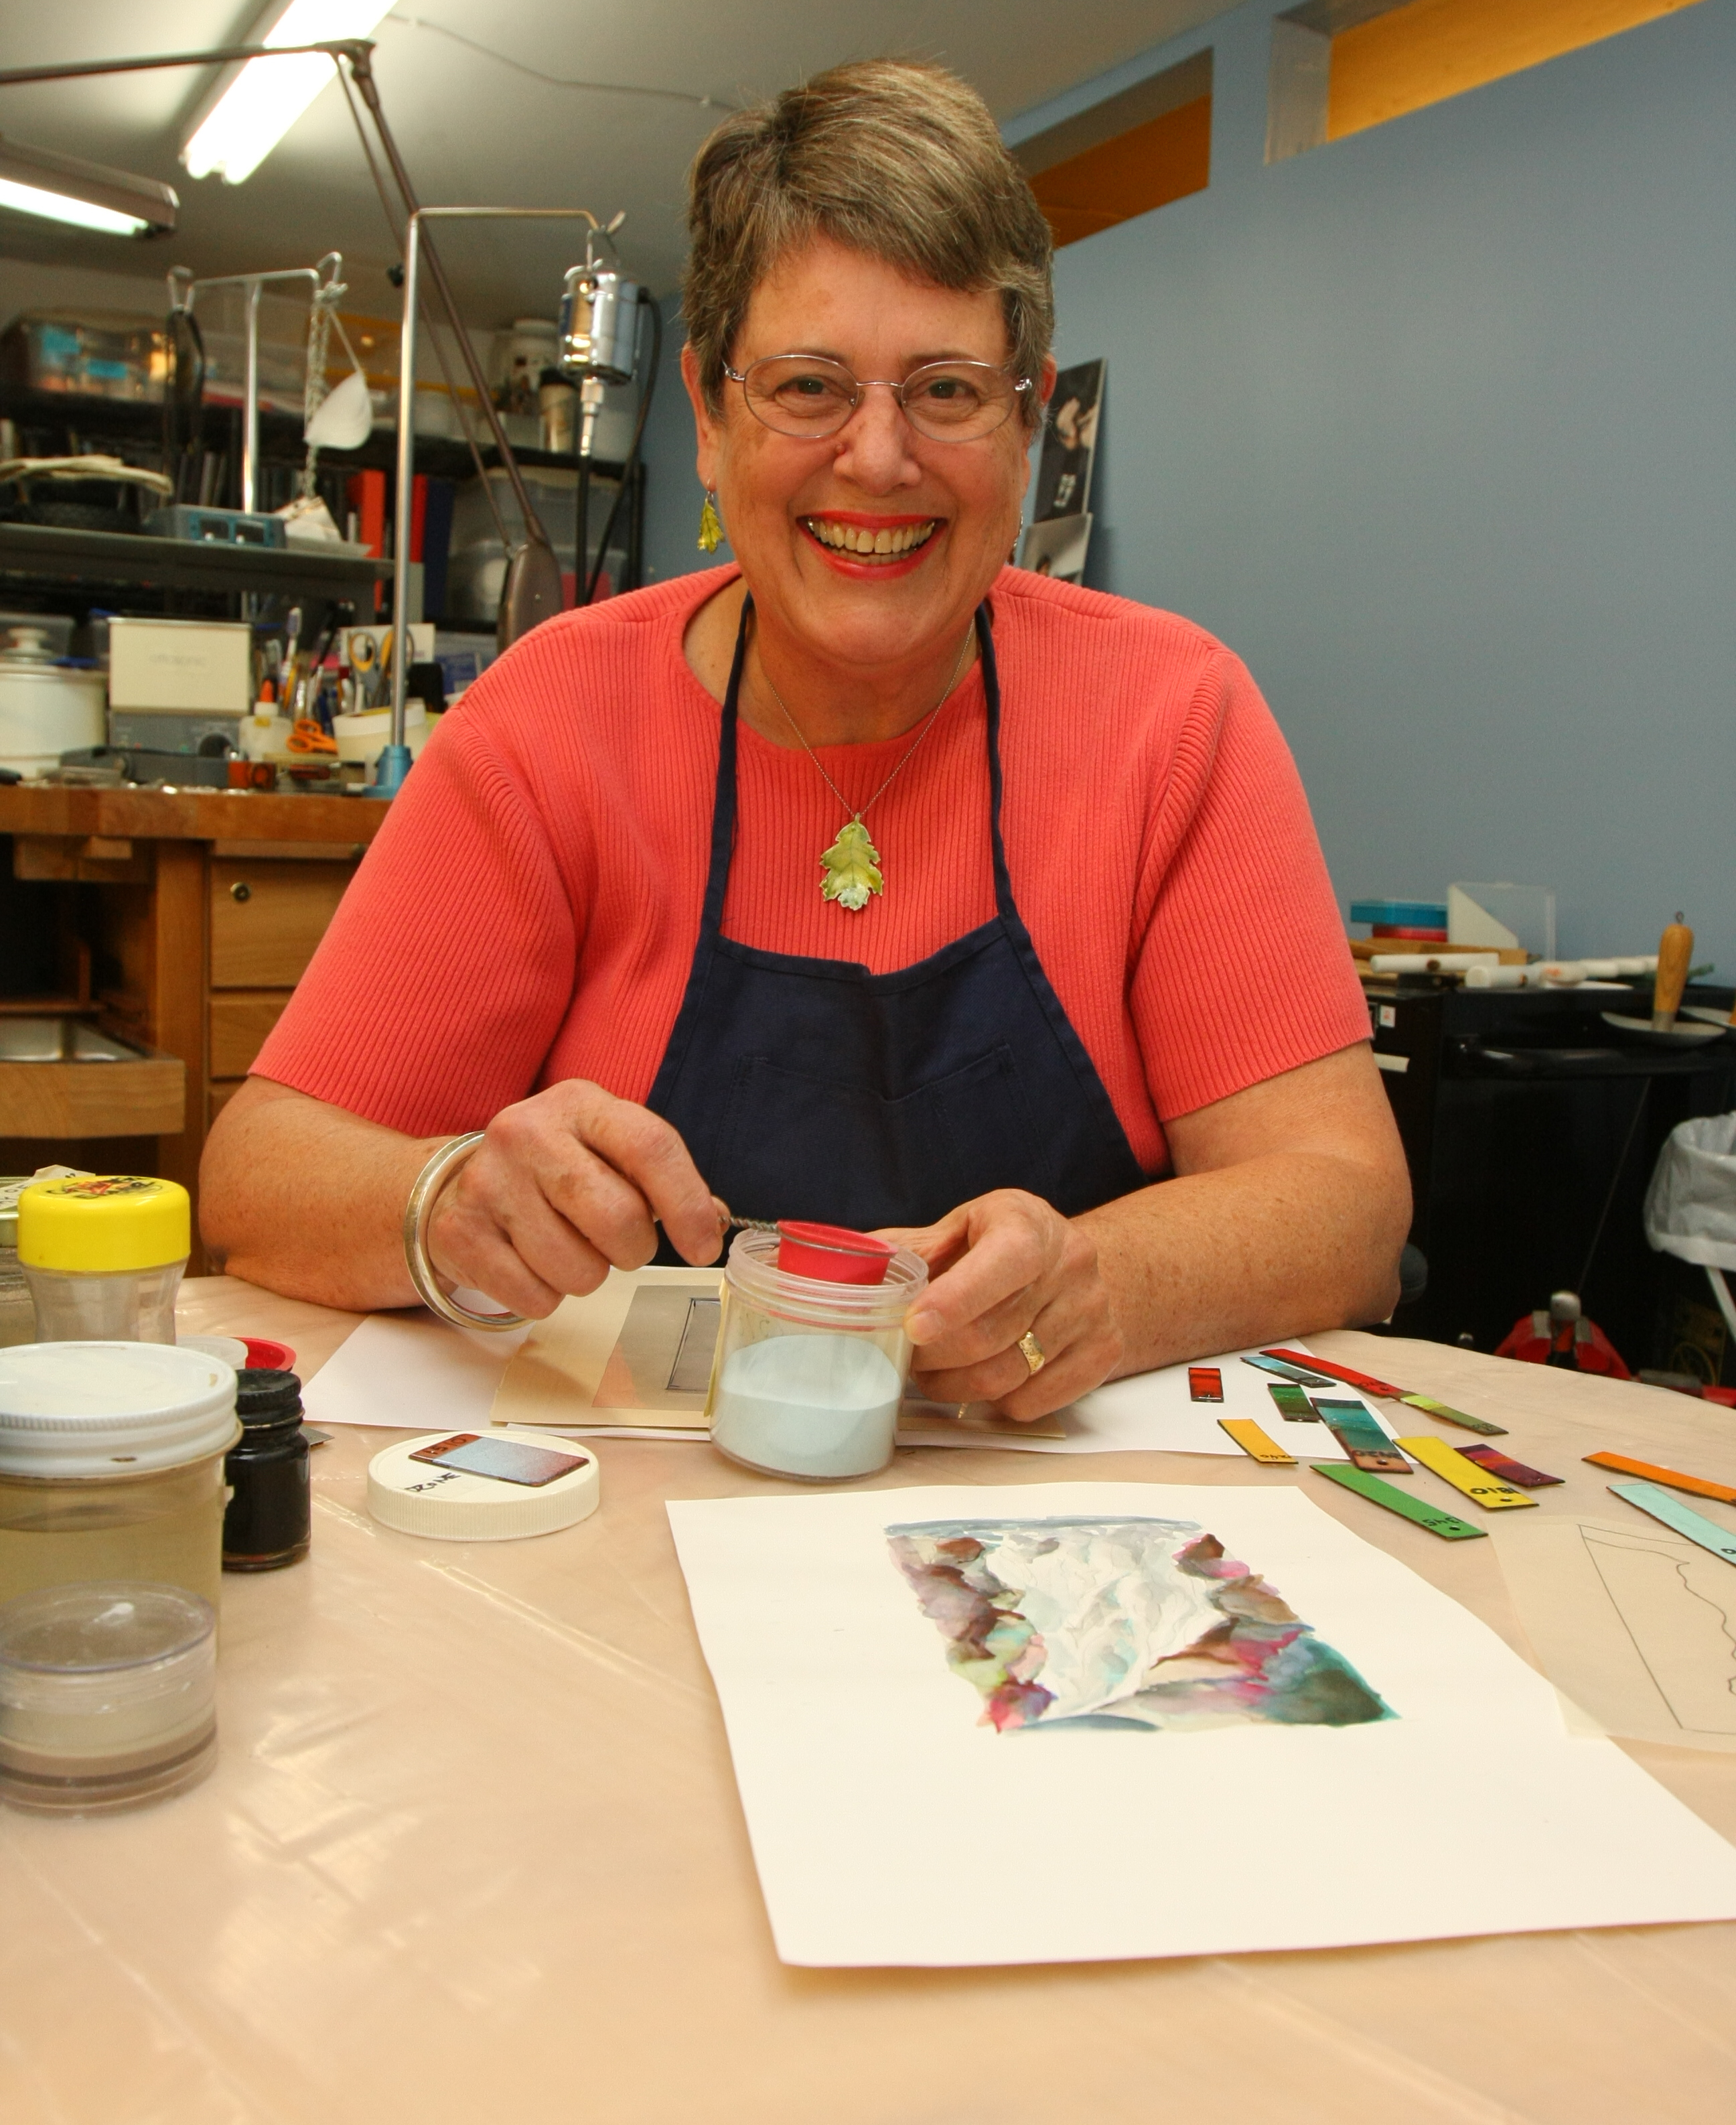 At work in her studio